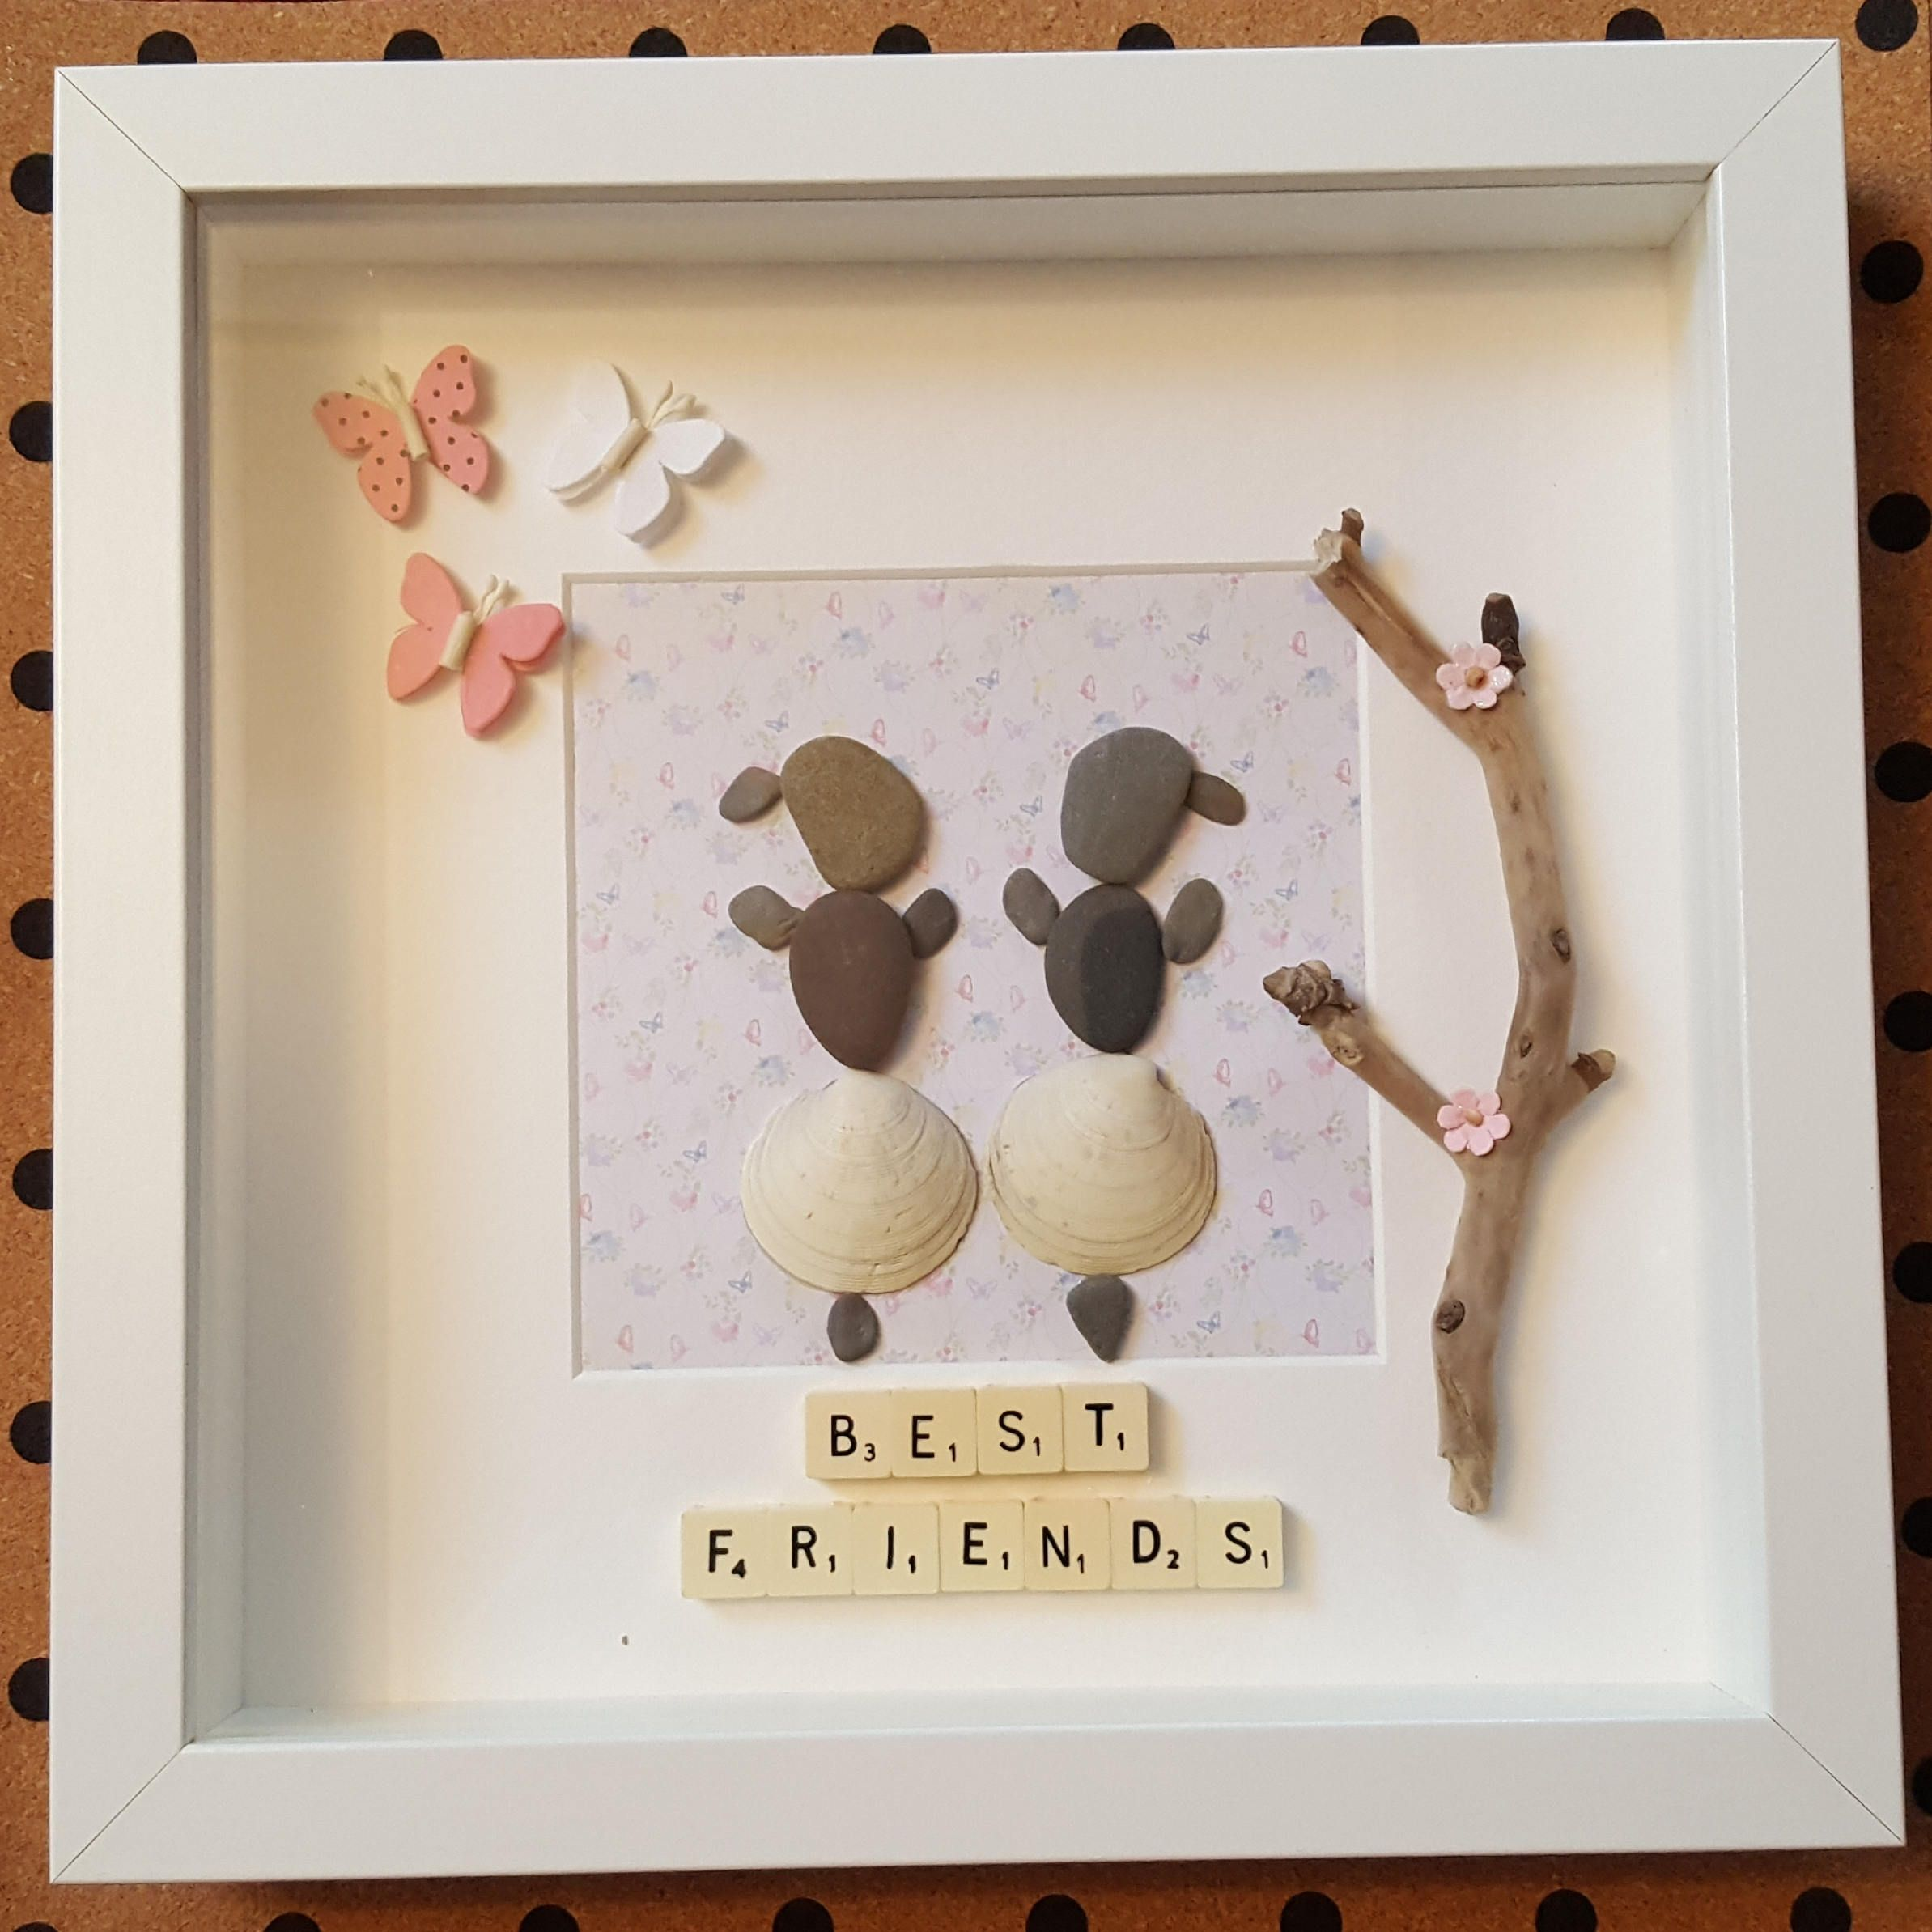 Handmade Pebble Art Frame Best Friends Dancing Ladies Girls Frame Pebbles And Scrabble One Of A Kind By Cristinasquirk Pebble Art Framed Art Glass Crafts